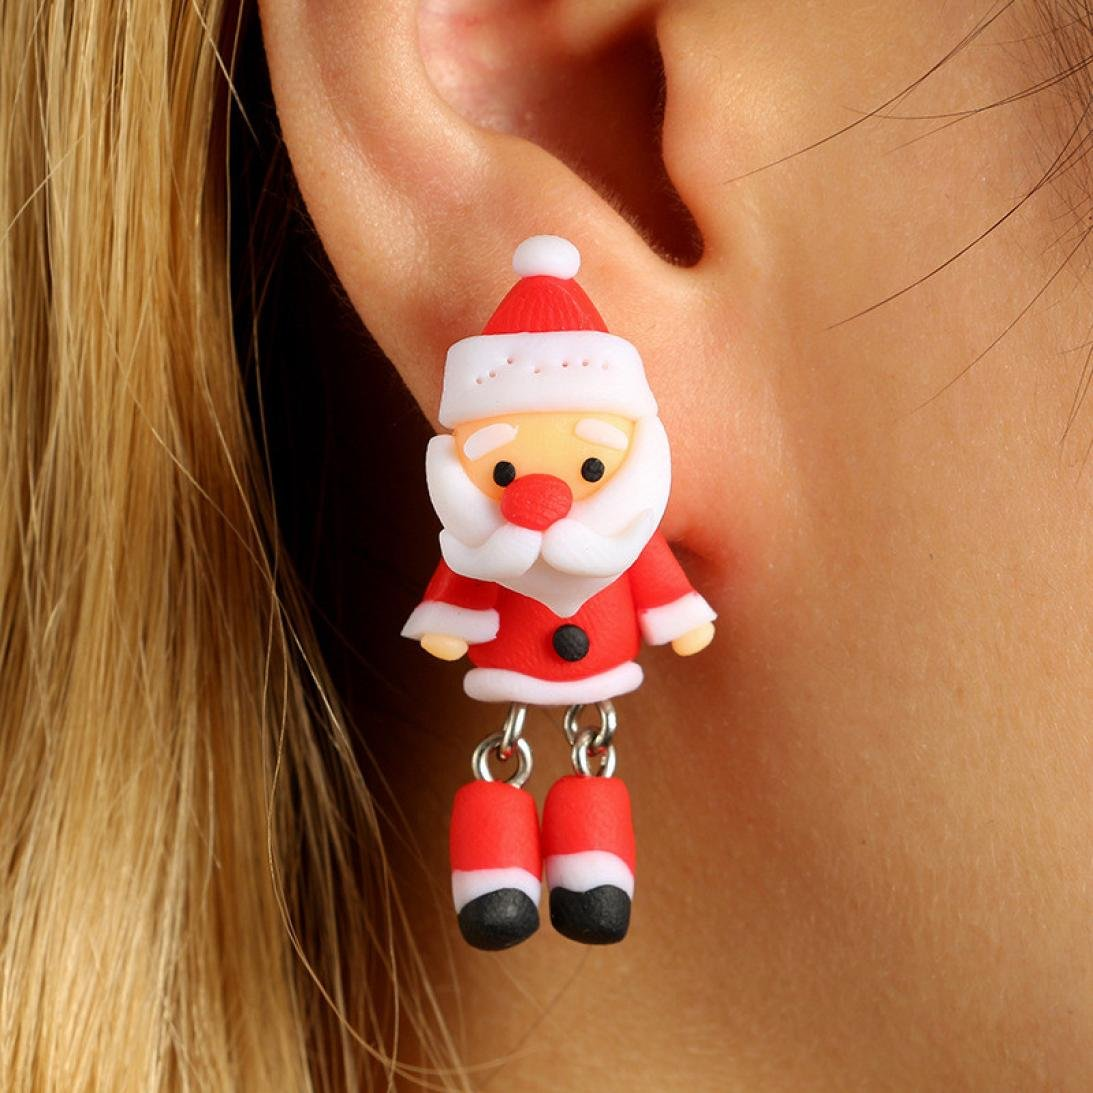 GreatFun Lovely Santa Claus Christmas Women Earrings Drop Dangle Earrings New Year Gift Fashion Jewelry